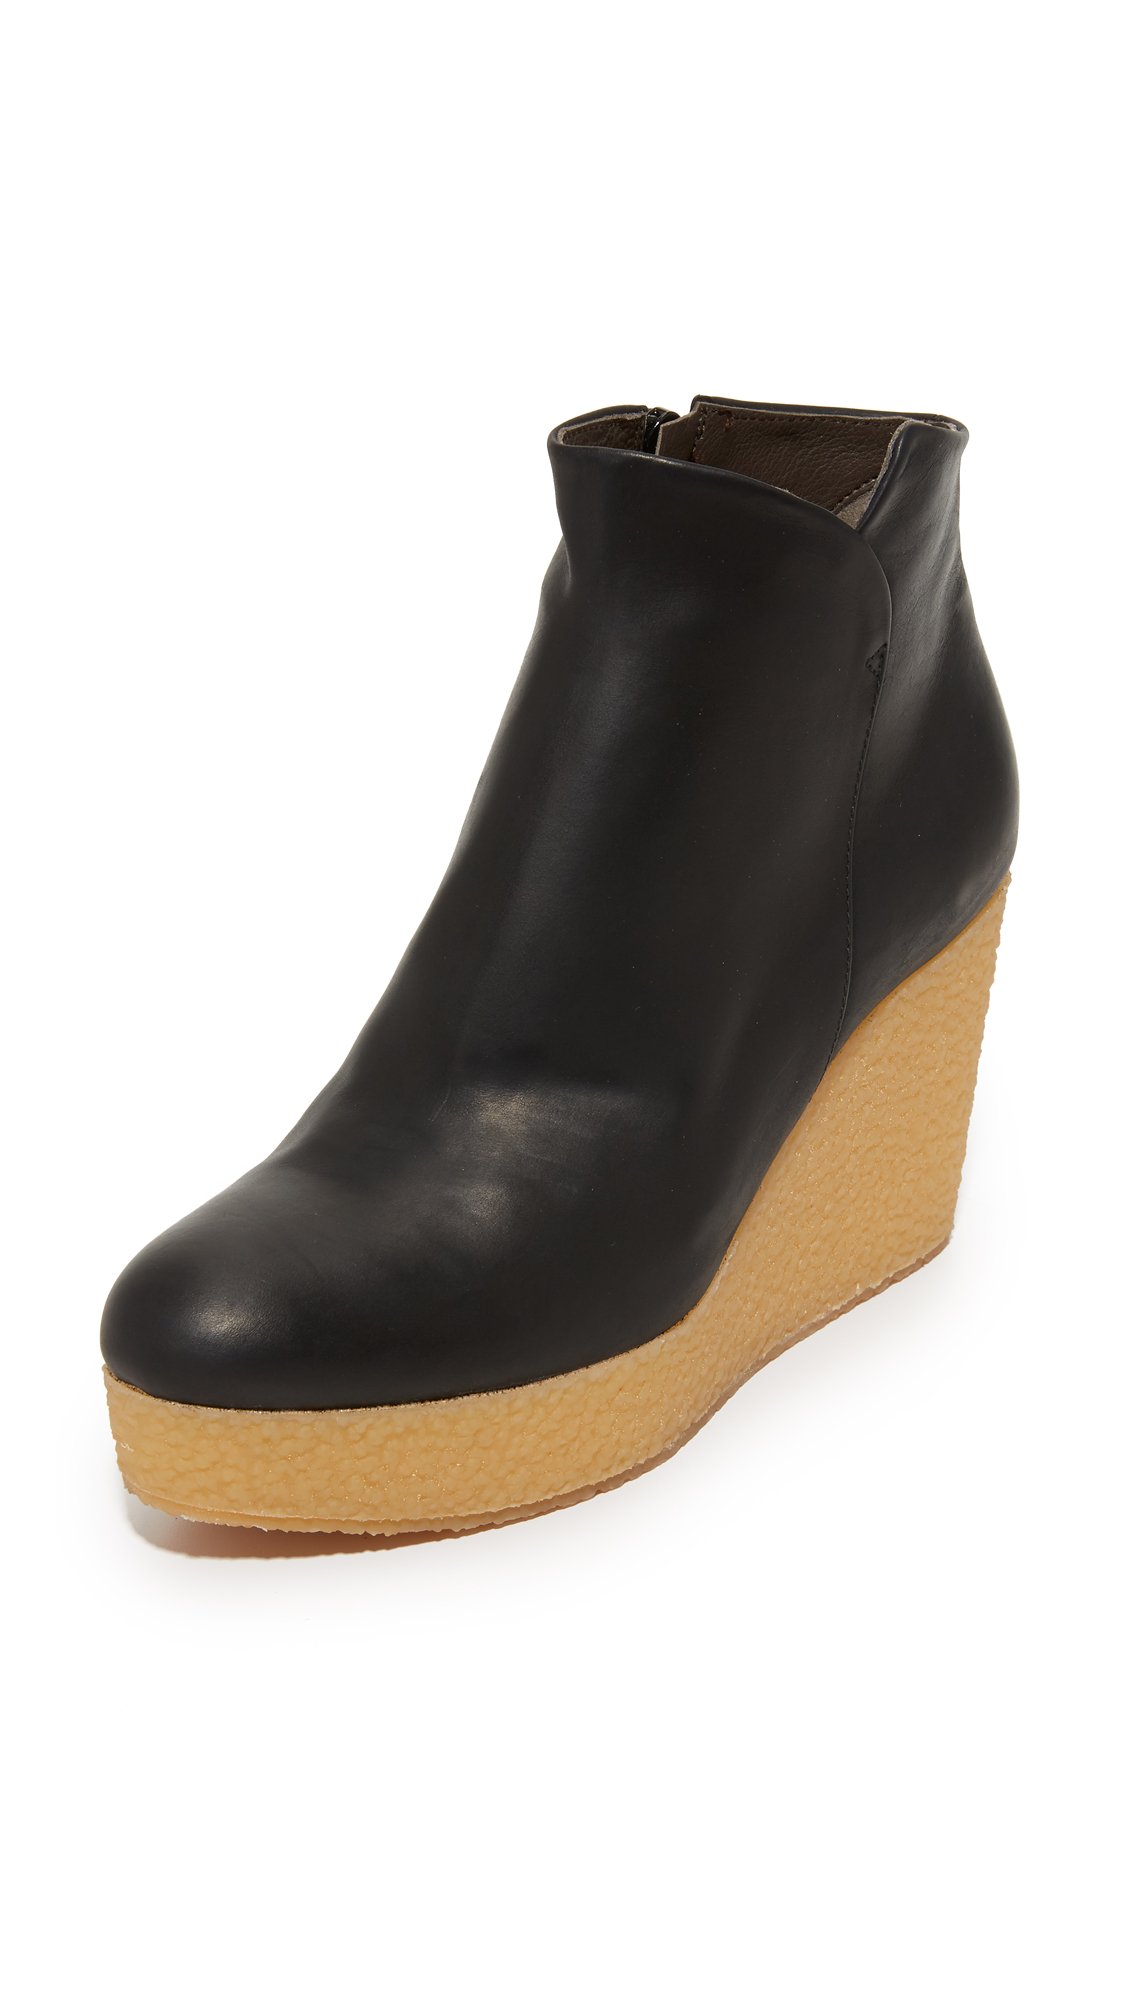 Coclico Shoes Nails Wedge Booties - Black at Shopbop